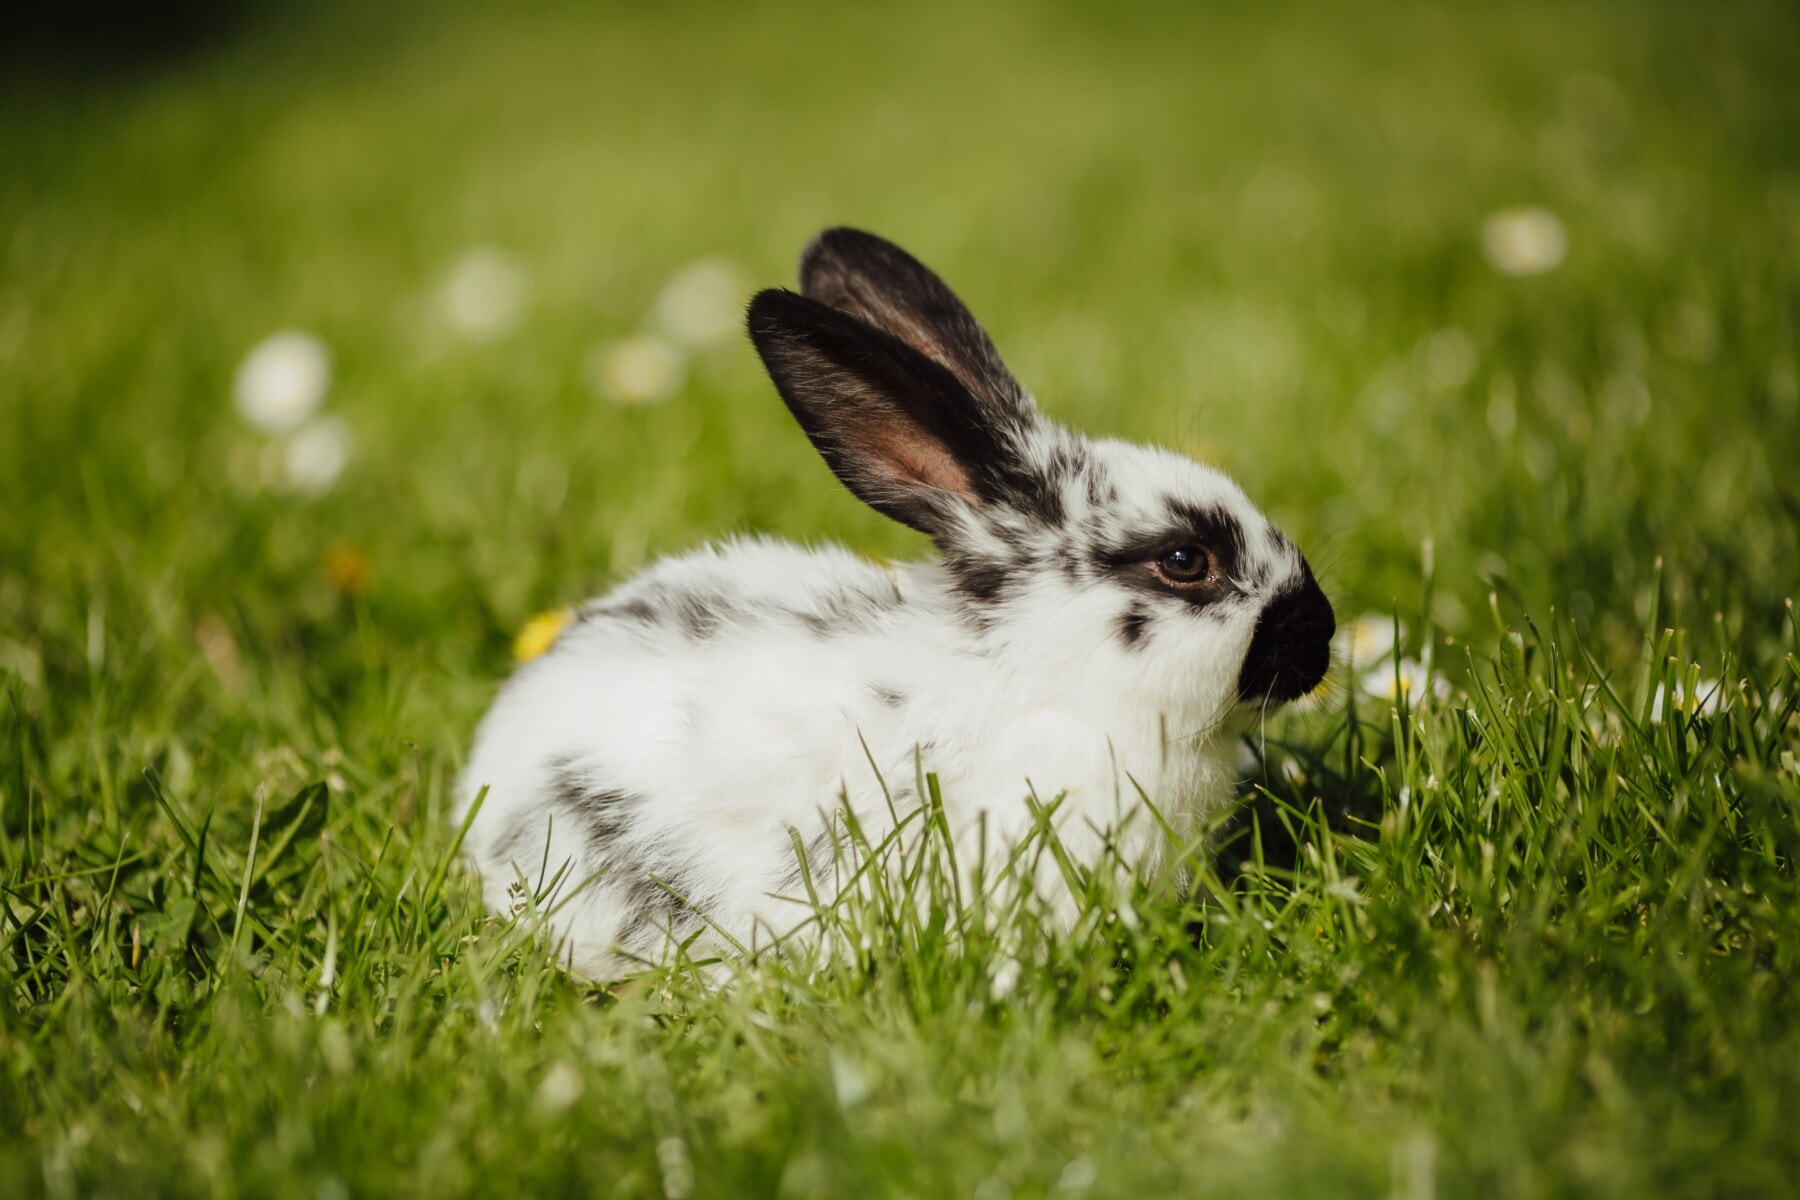 easter, bunny, rabbit, black and white, fair weather, sunny, animal, spring time, green grass, domestic